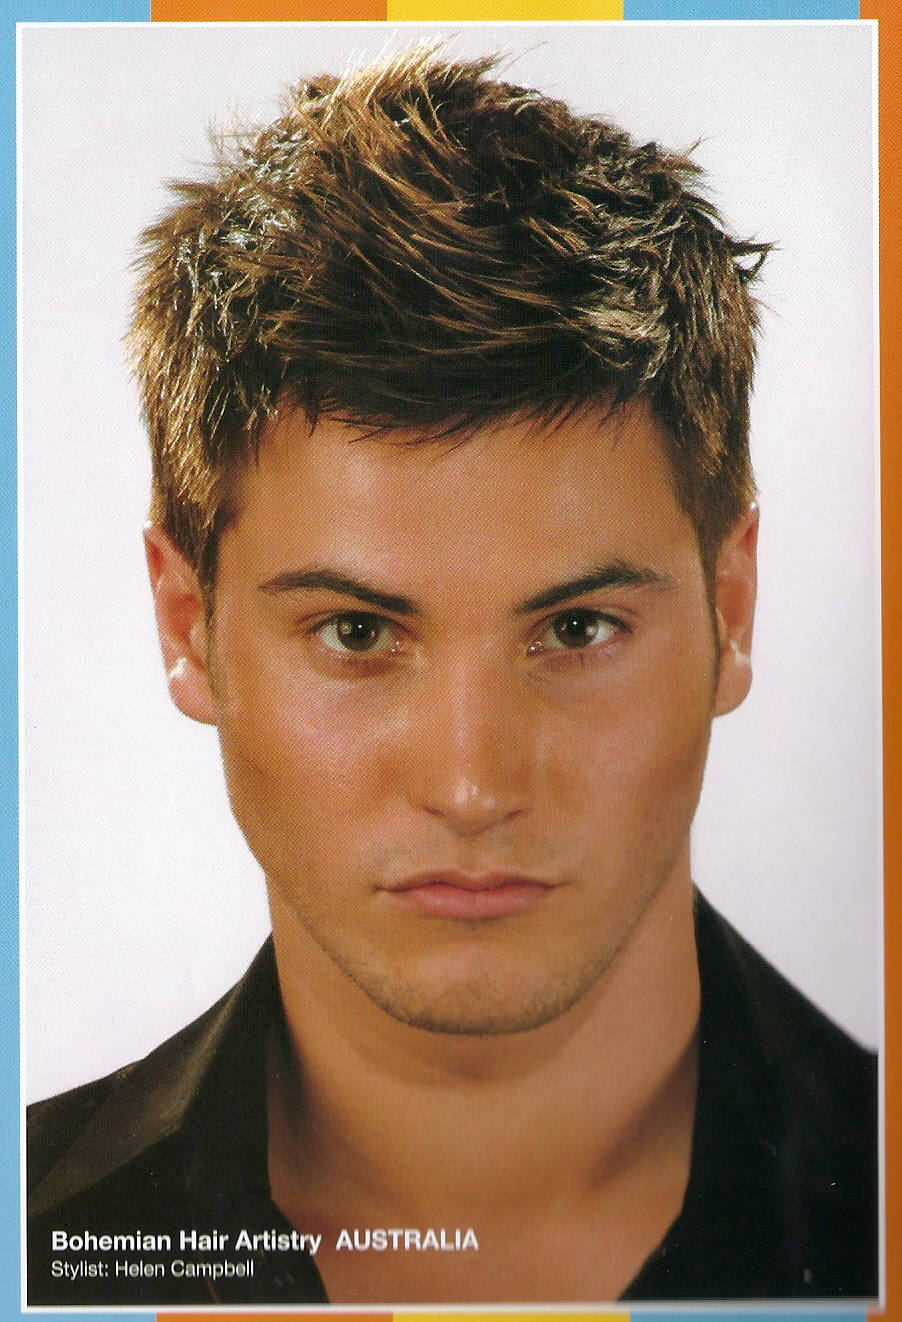 Mens Shag Hairstyle Pictures The Best Pictures Collection About Hairstyles and Fashion